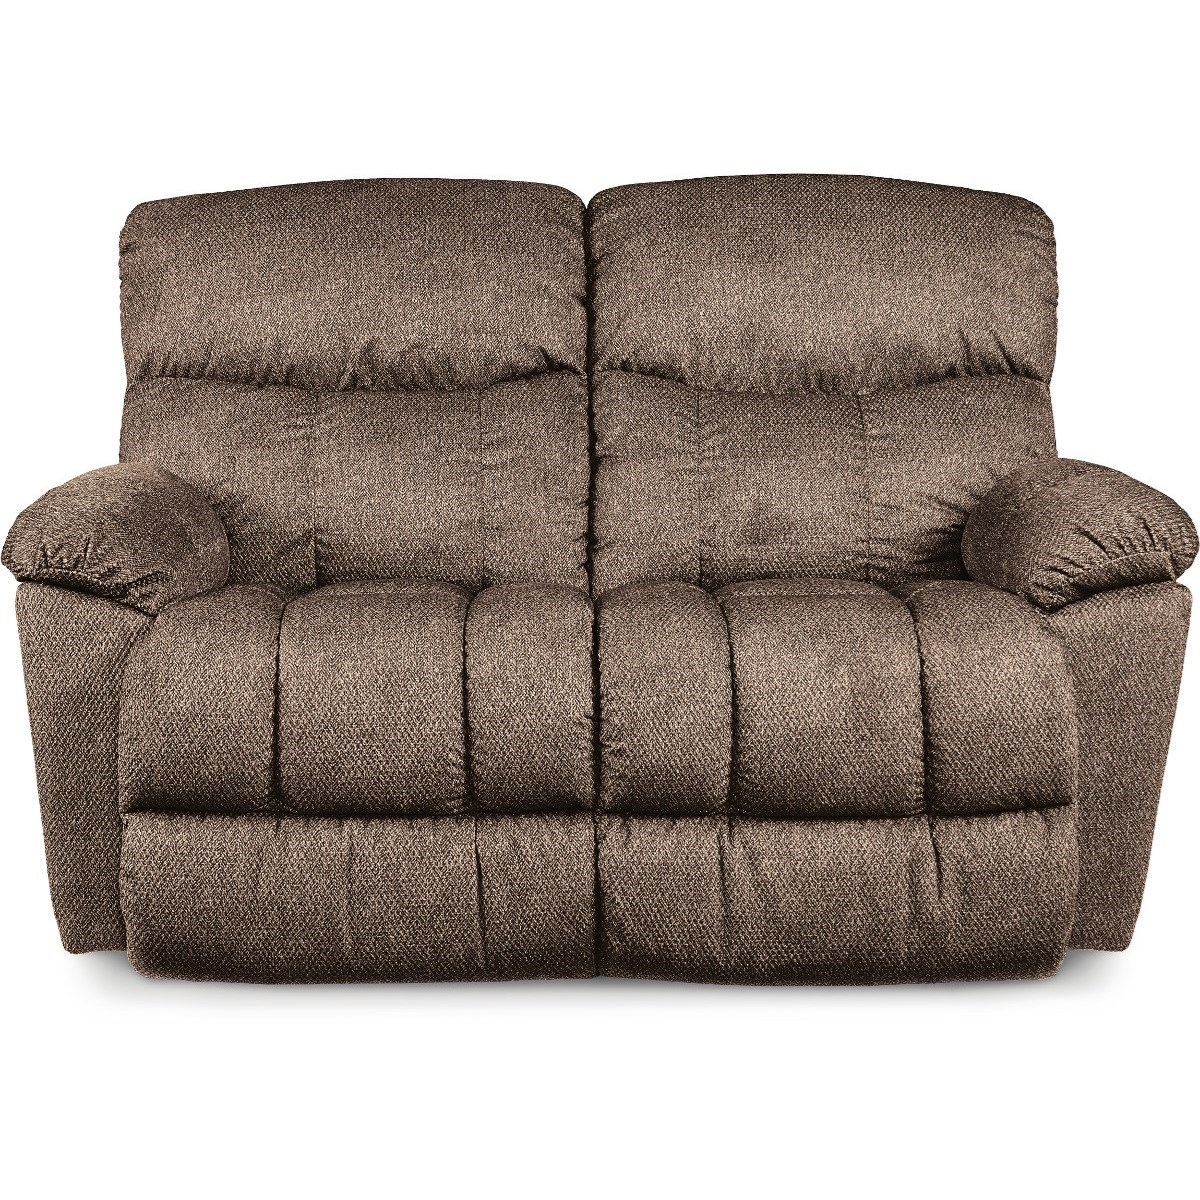 Morrison Reclining Loveseat by La-Z-Boy at Reid's Furniture